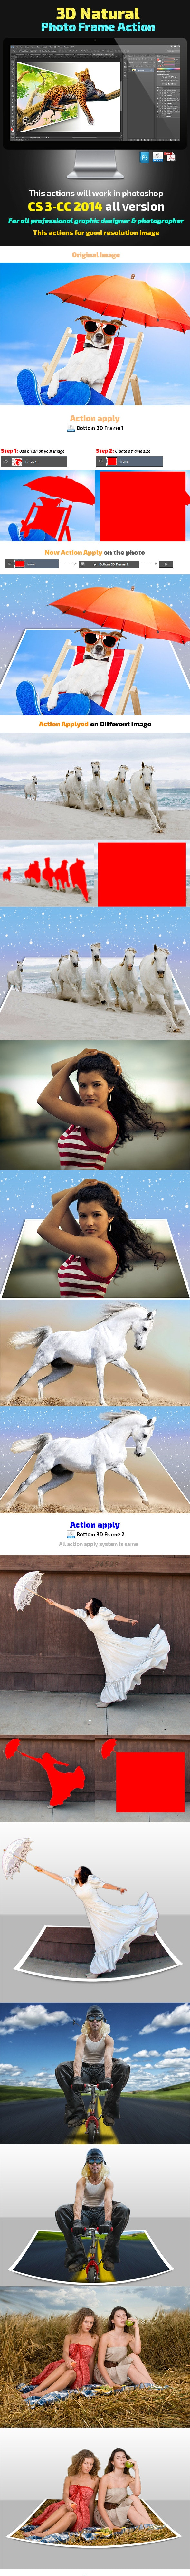 3D Natural Photo Frame Action - Photo Effects Actions